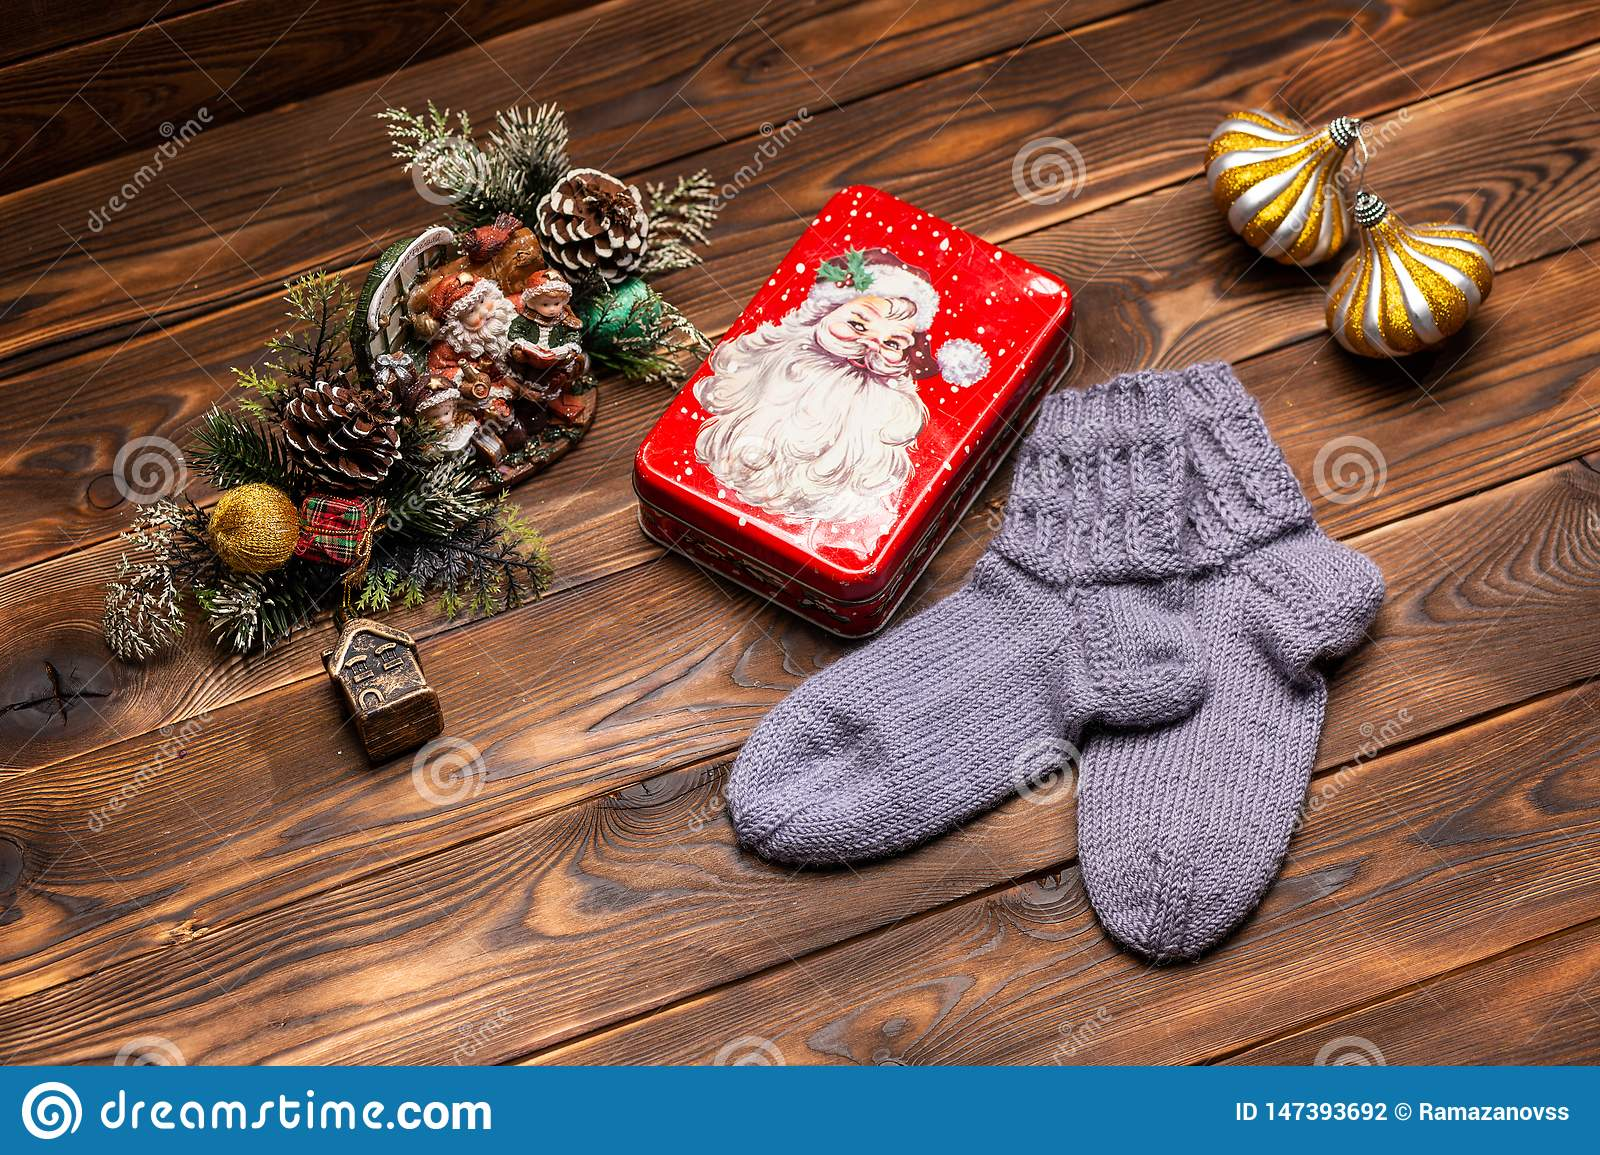 Gray woolen knitted socks, Christmas decorations and a metal box with the image of Santa Claus on a wooden background